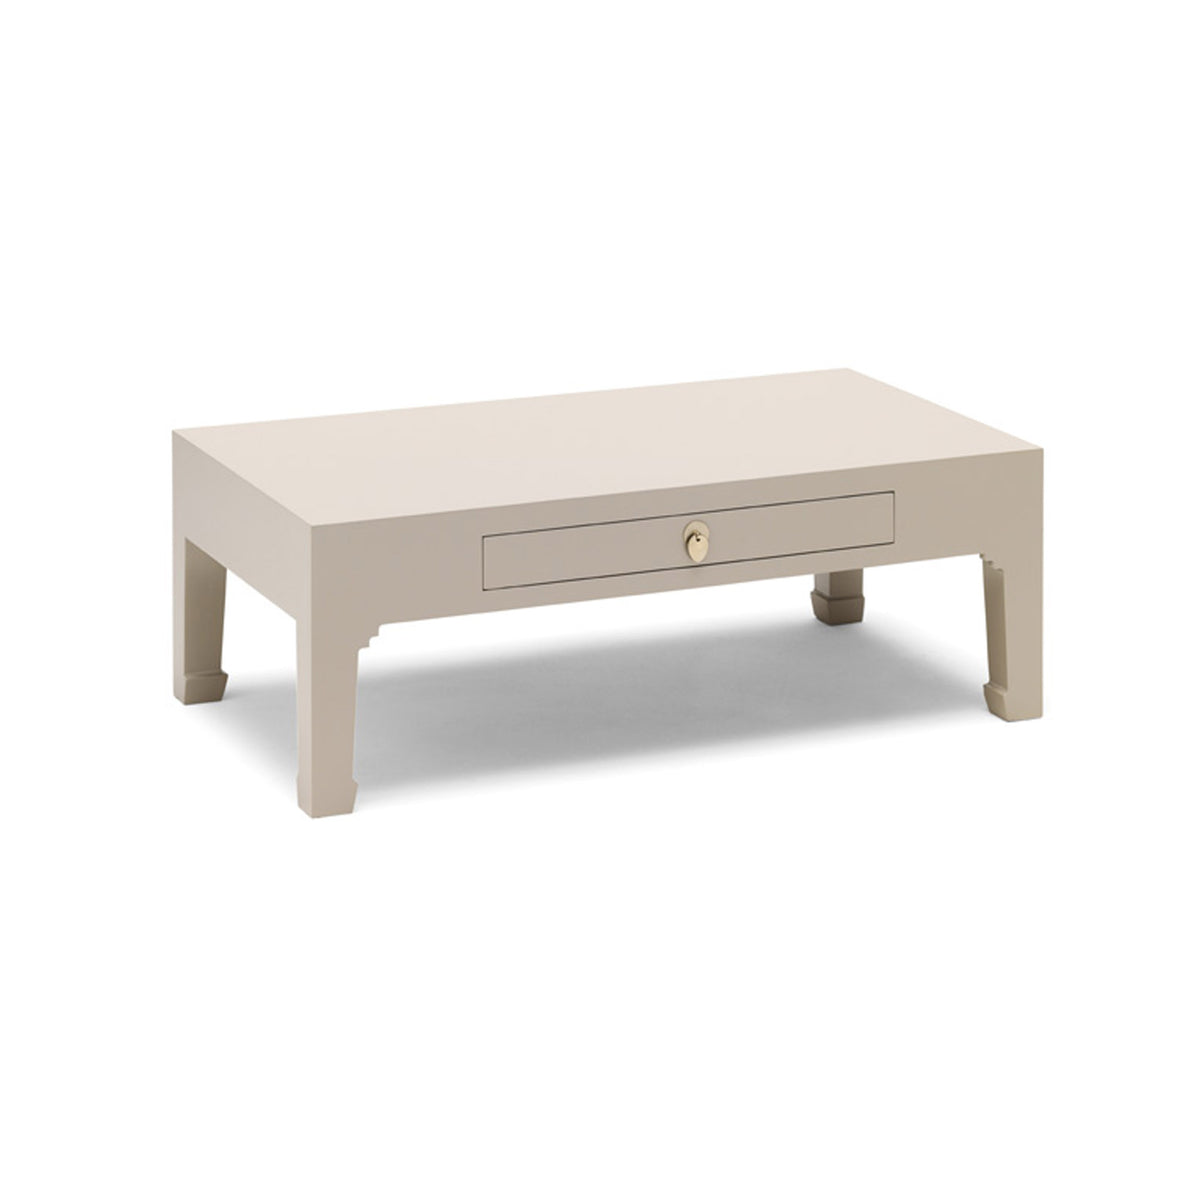 The Nine Schools Oyster Grey Coffee Table by Roseland Furniture